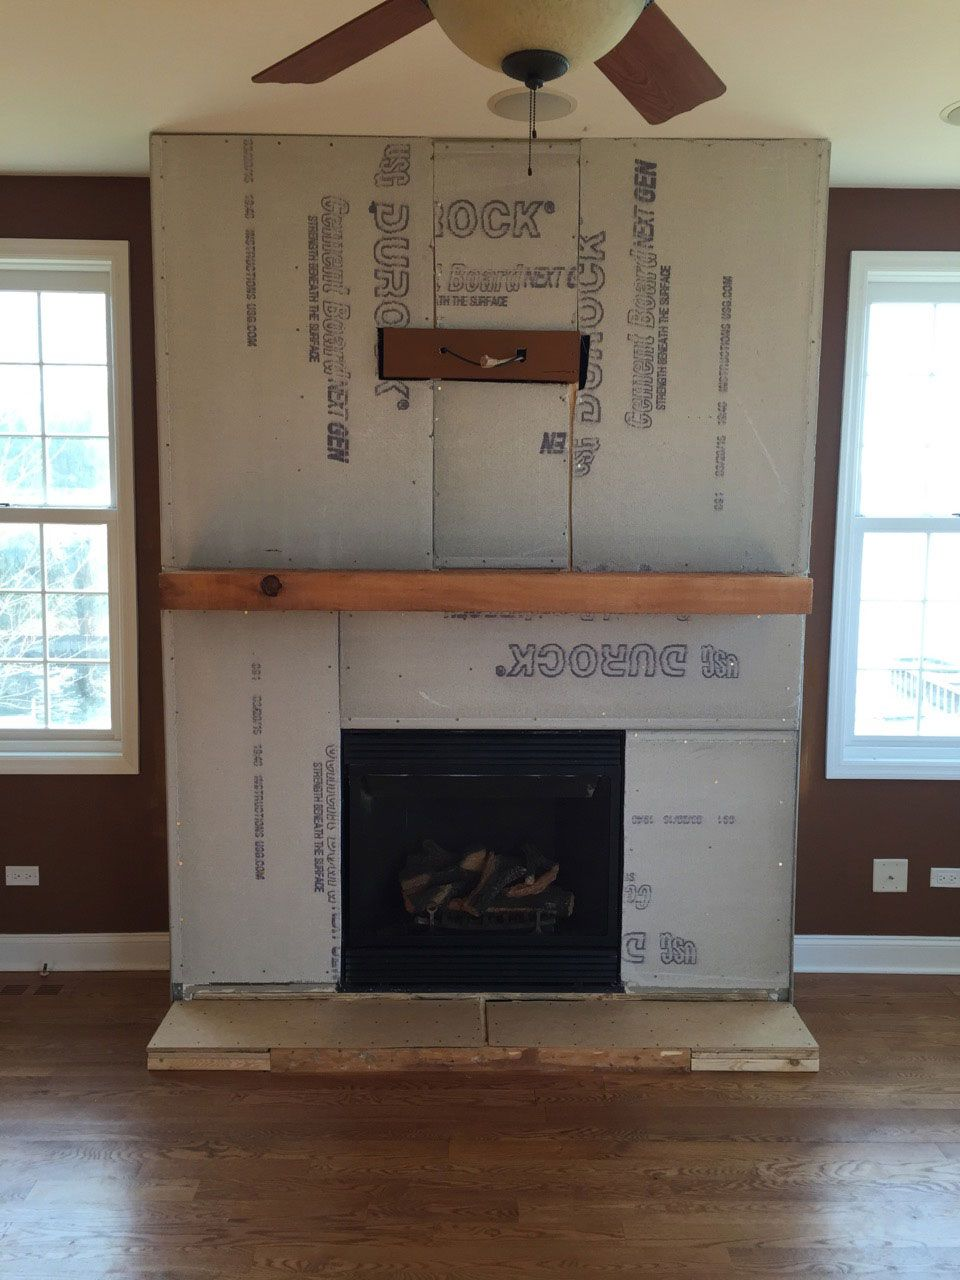 Genial A Step By Step DIY Stone Veneer Installation On A Fireplace. In Only